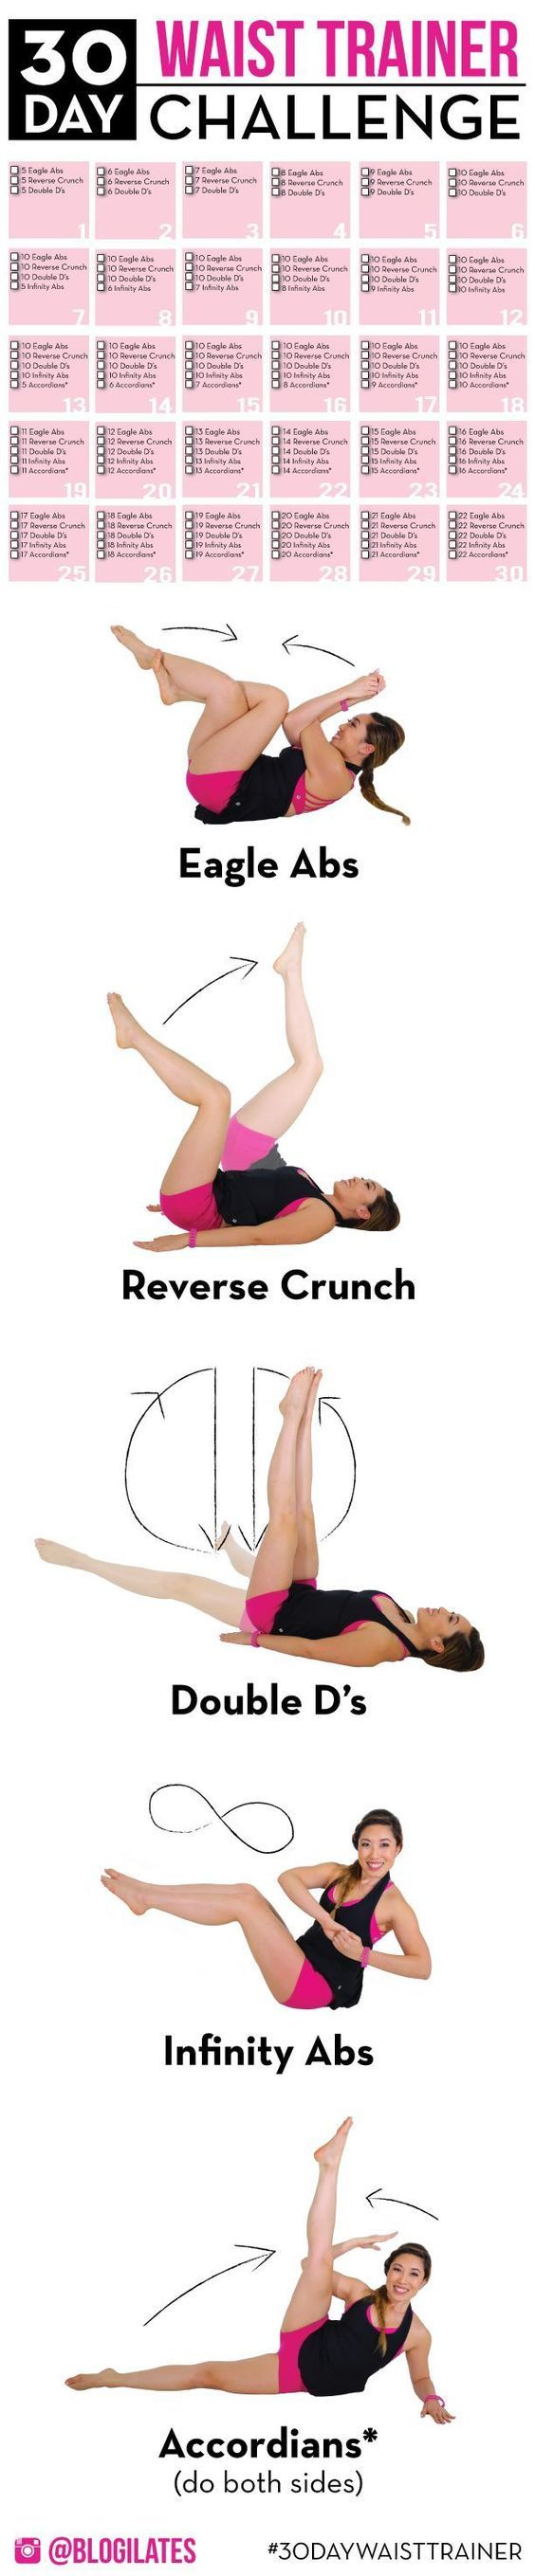 This is the 30 Day Waist Trainer Challenge Workout - Forget wearing those silly waist trainers (which are basically modern day corsets). This will help you tighten the muscle fibers of your own NATURAL CORSET! Your core! So easy to start, but gets harder as you go.